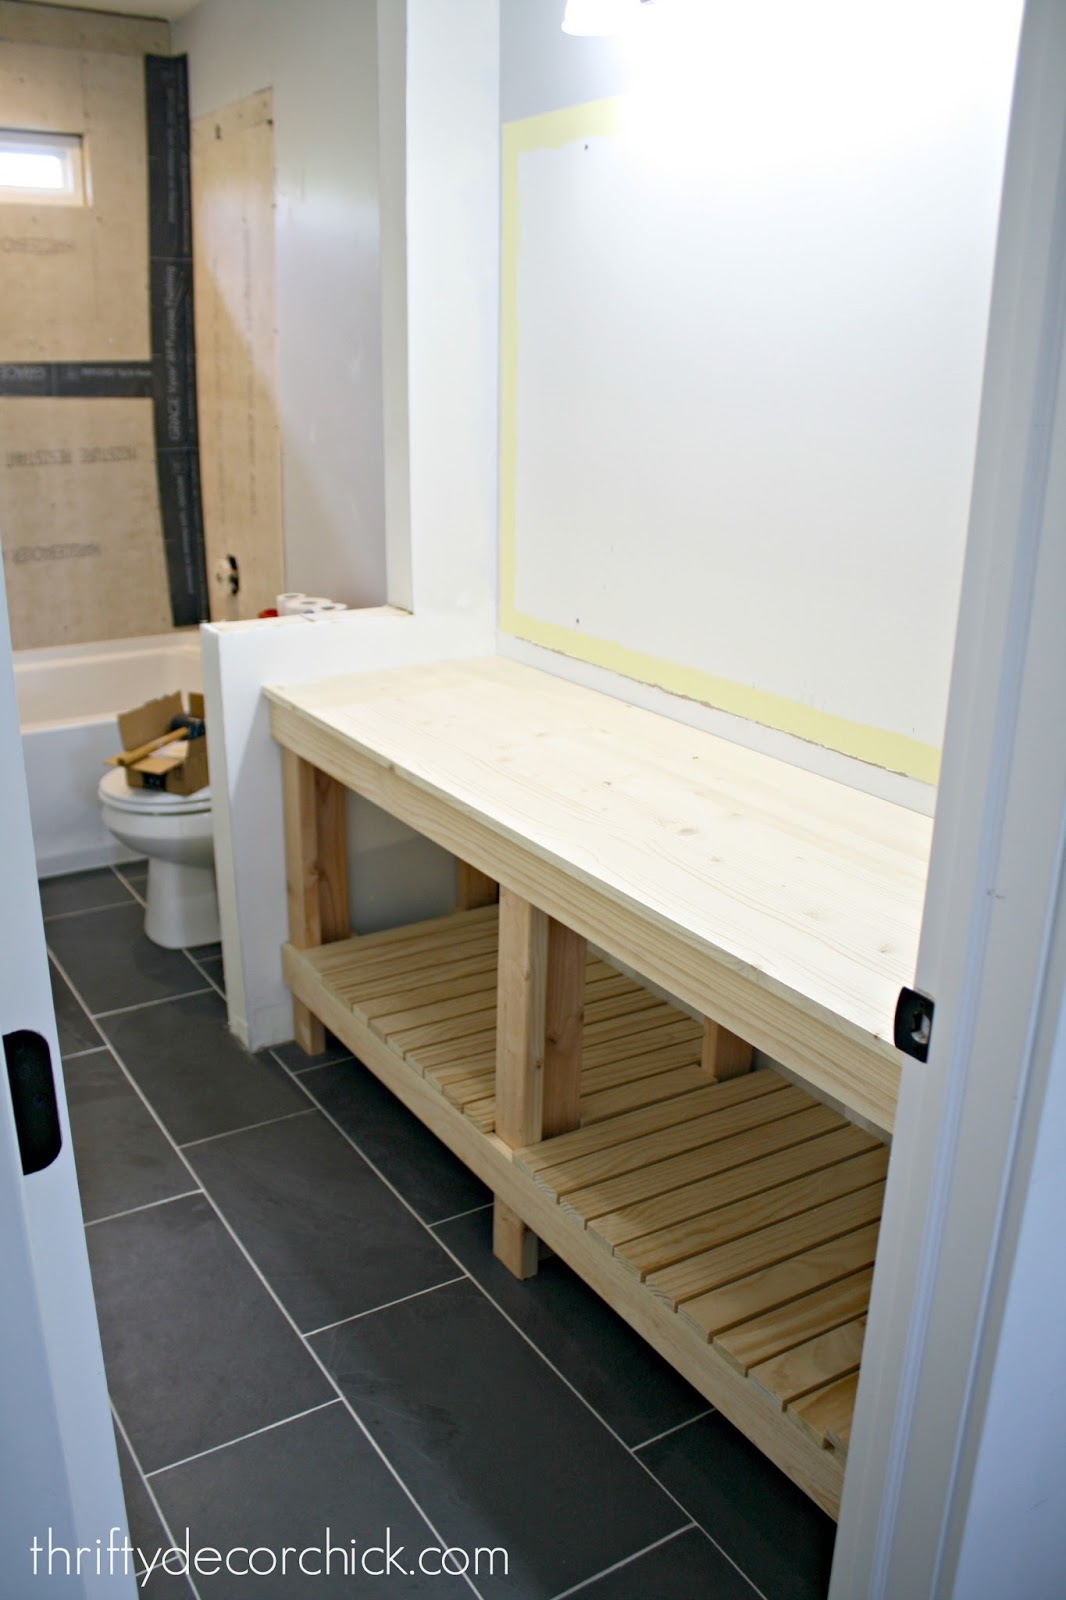 How to build a DIY open bathroom vanity from Thrifty Decor Chick